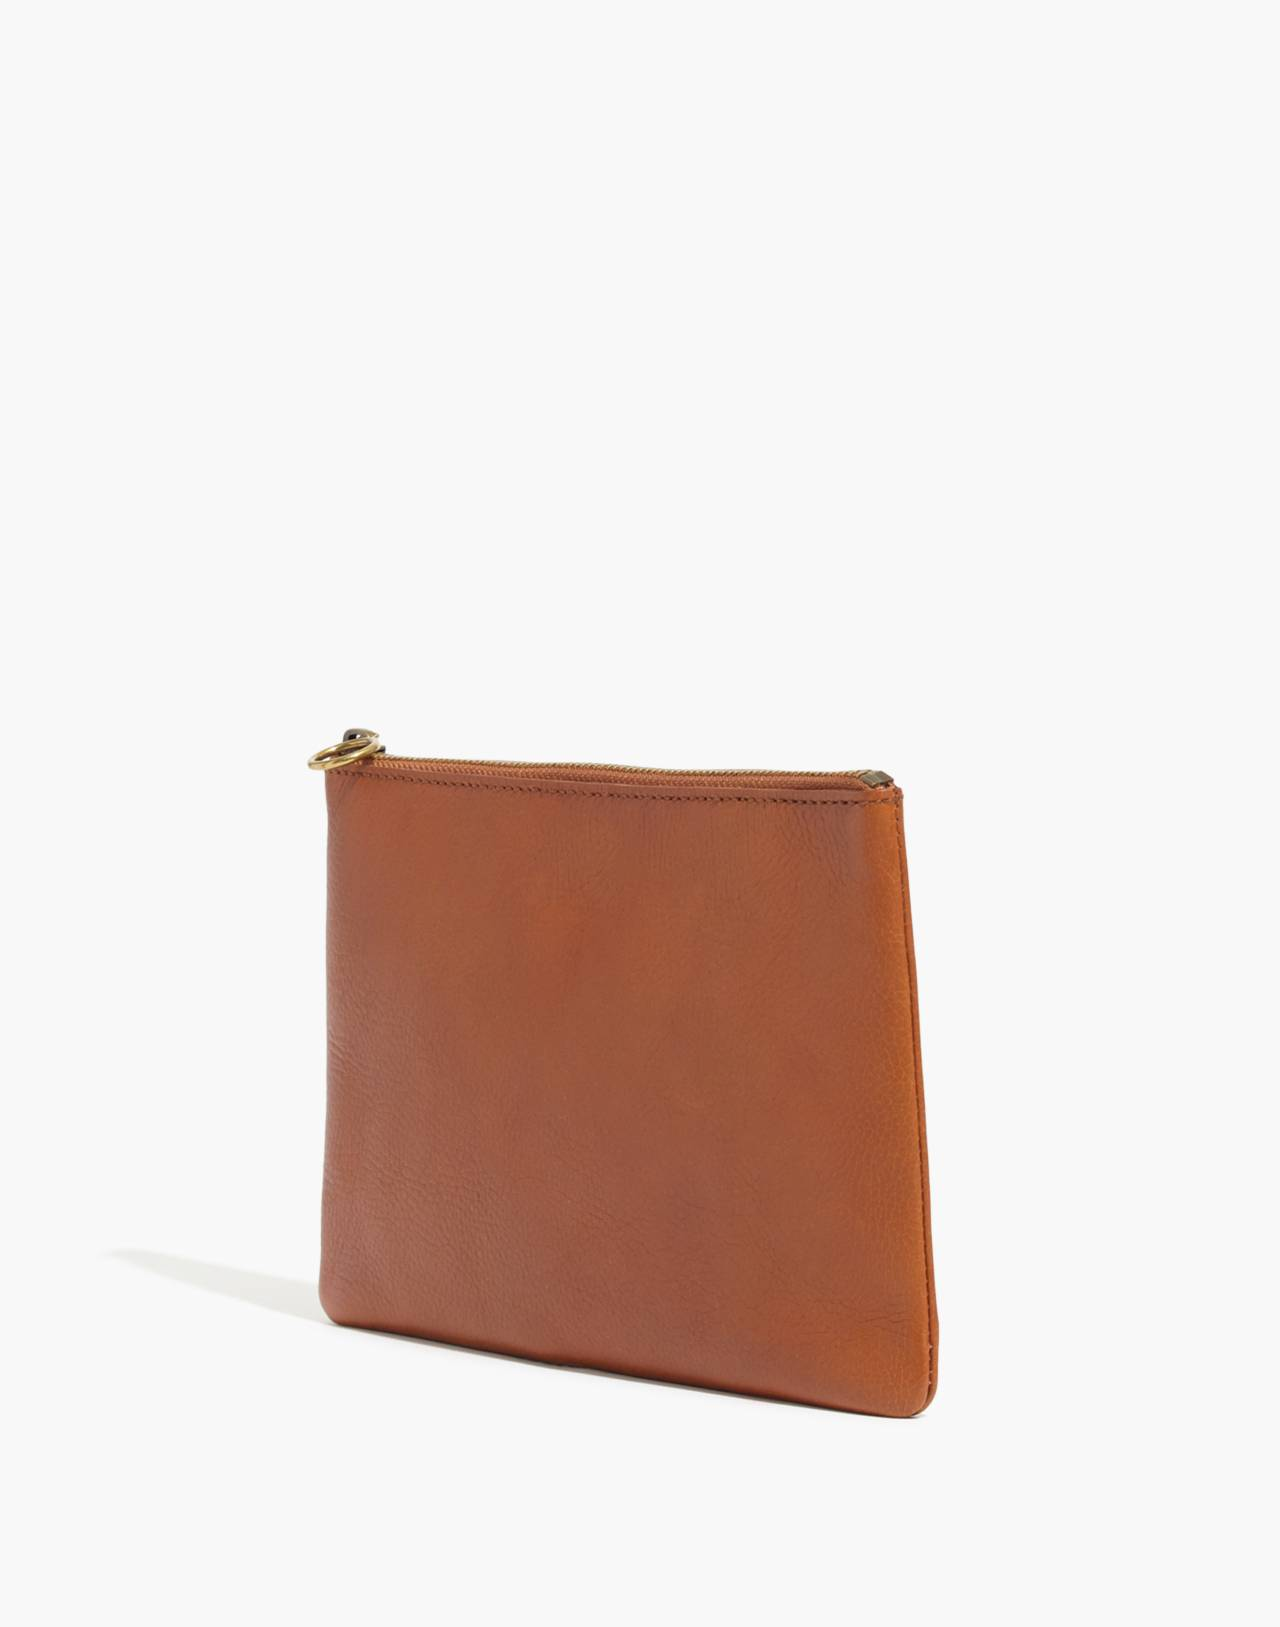 The Leather Pouch Clutch in english saddle image 2